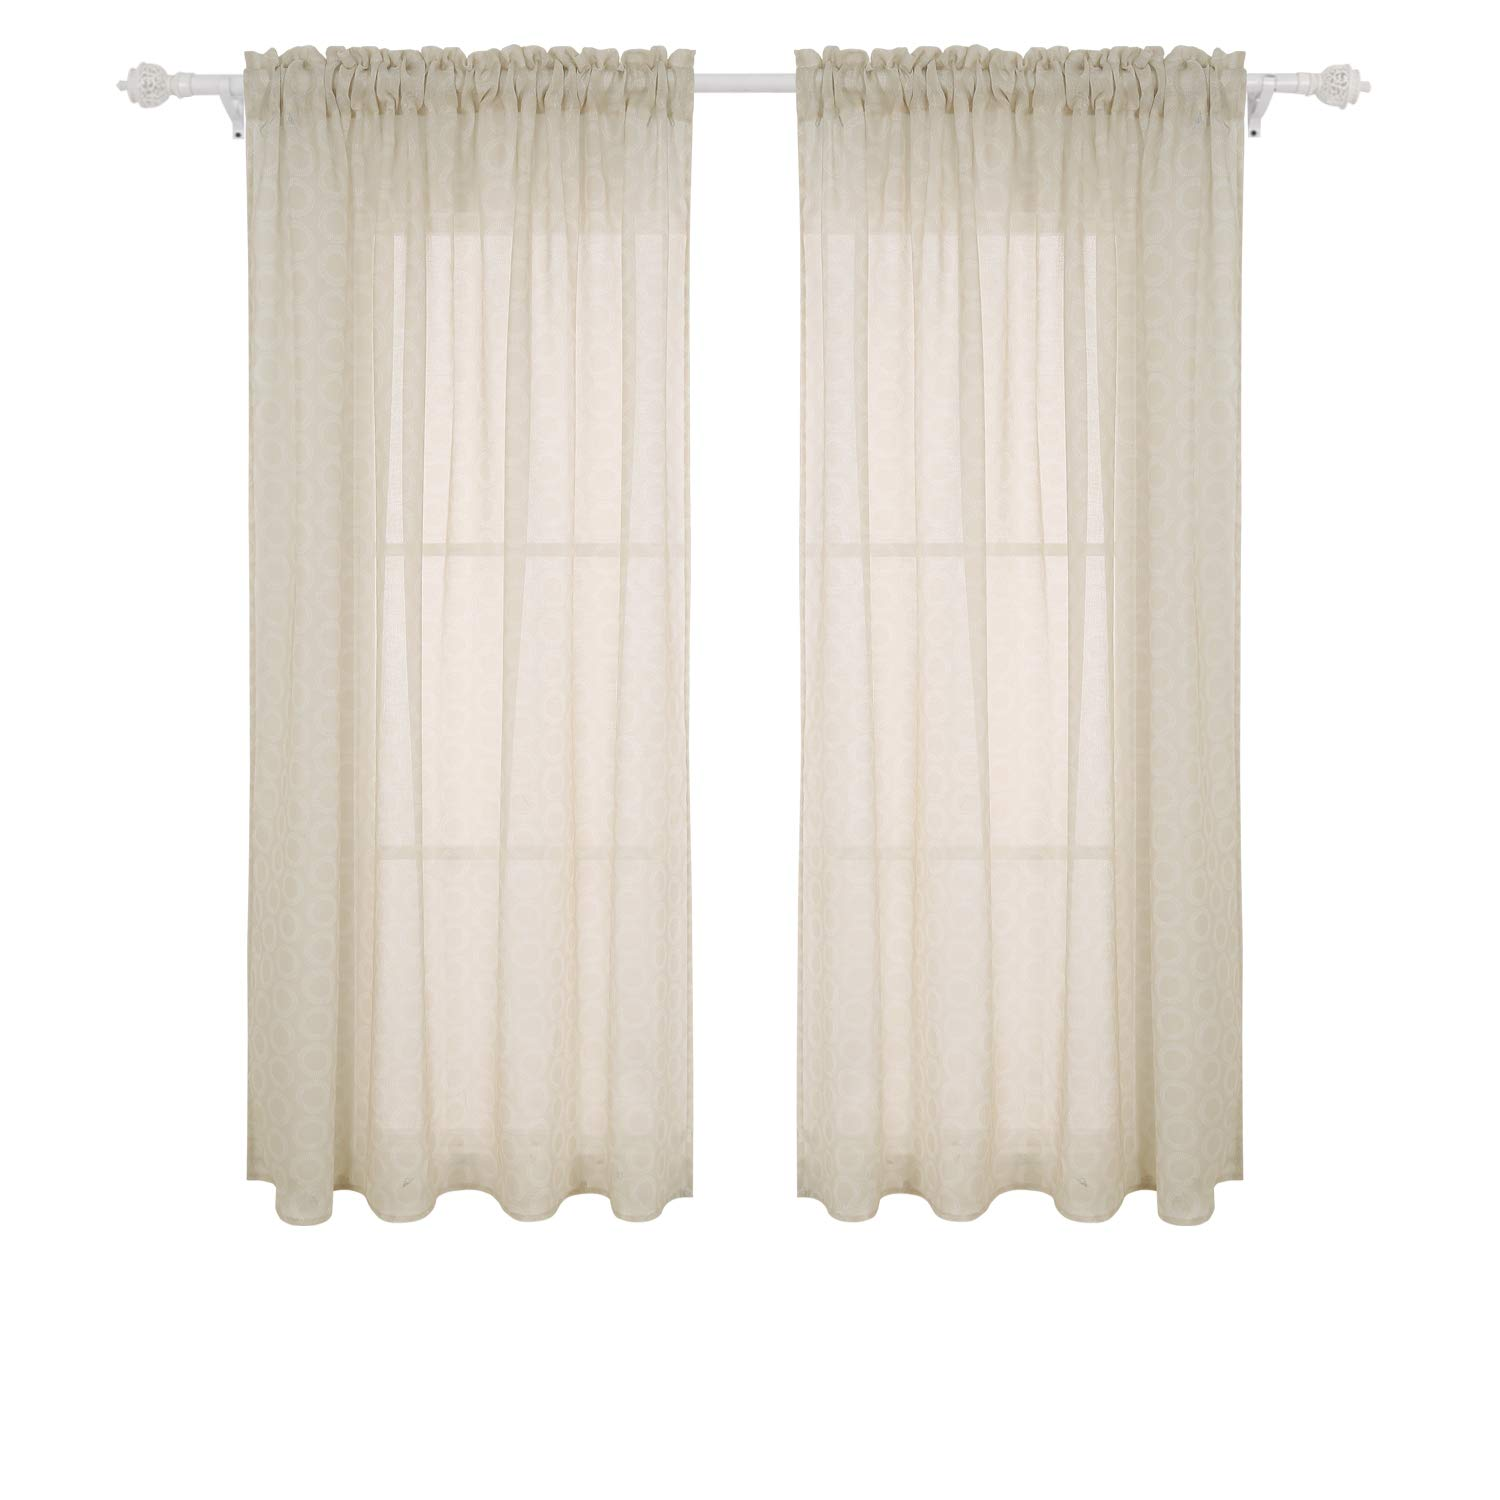 Deconovo Sheer Curtains 63 Inches Long Rod Pocket Sheer Drapes Circle Printed Sheer for Kitchen 42W X 63L Inch Beige 2 Panels